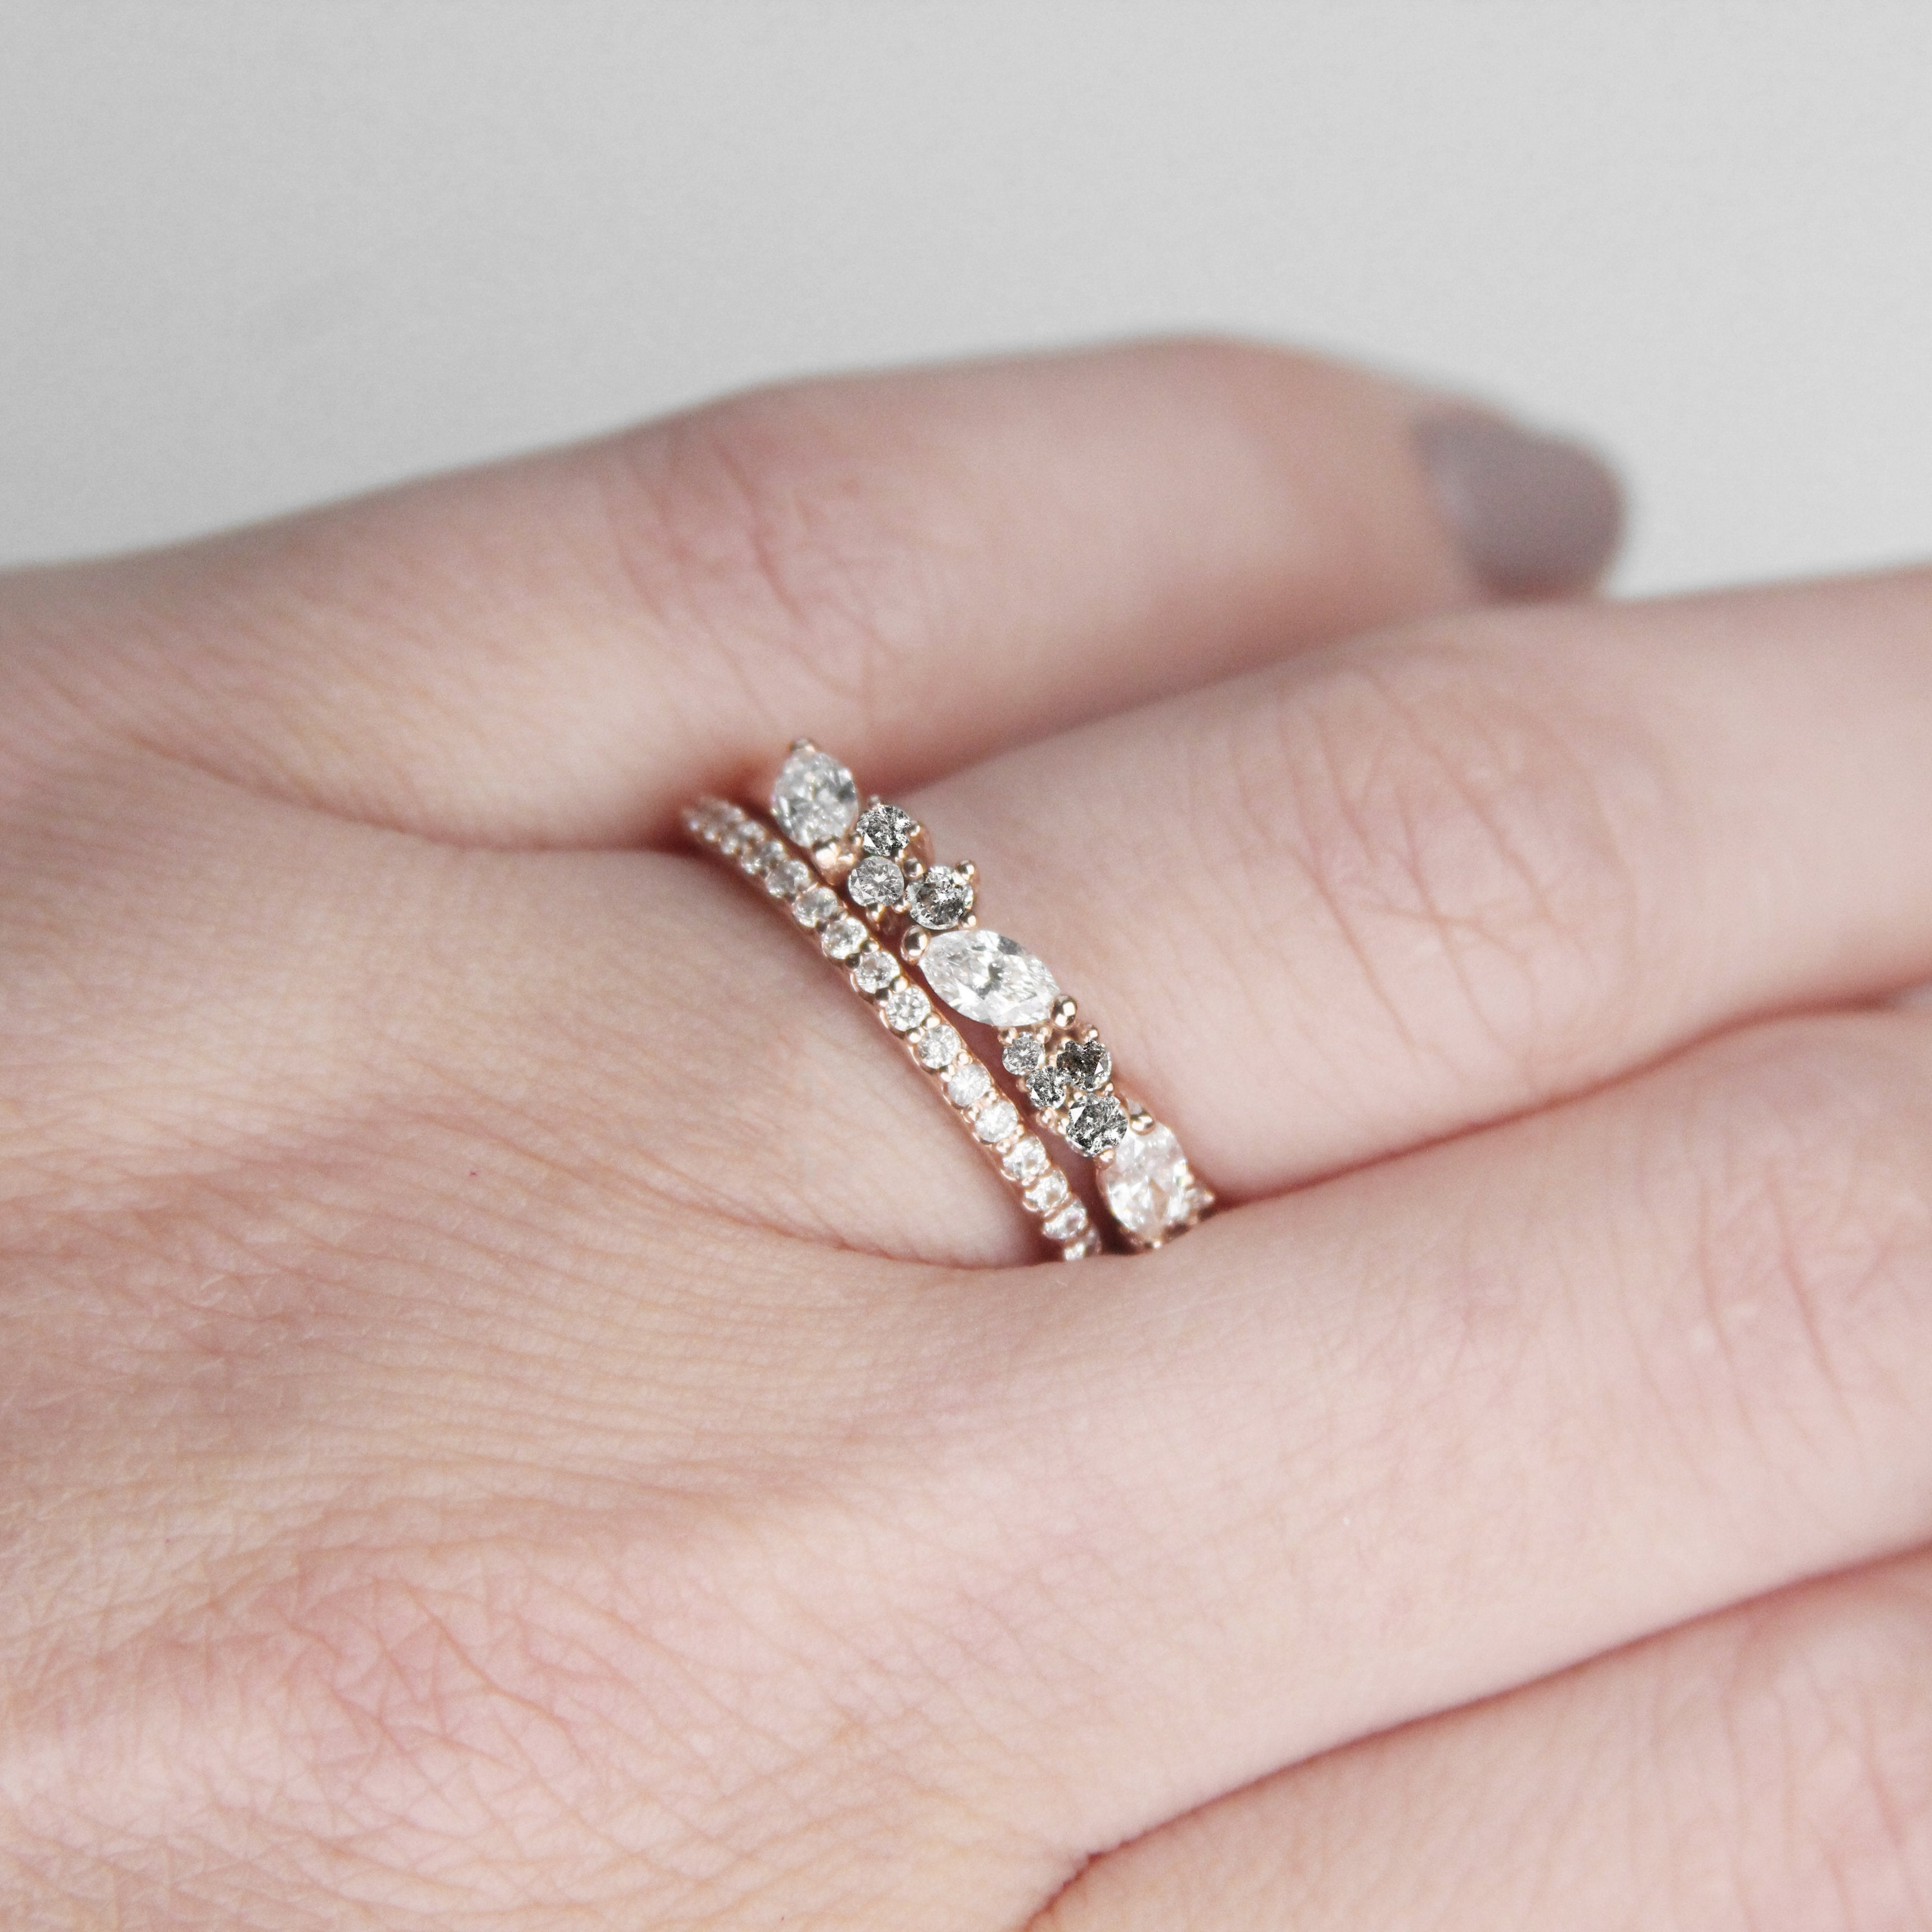 Genevieve Diamond Engagement Ring Band - White + Gray diamonds - Salt & Pepper Celestial Diamond Engagement Rings and Wedding Bands  by Midwinter Co.